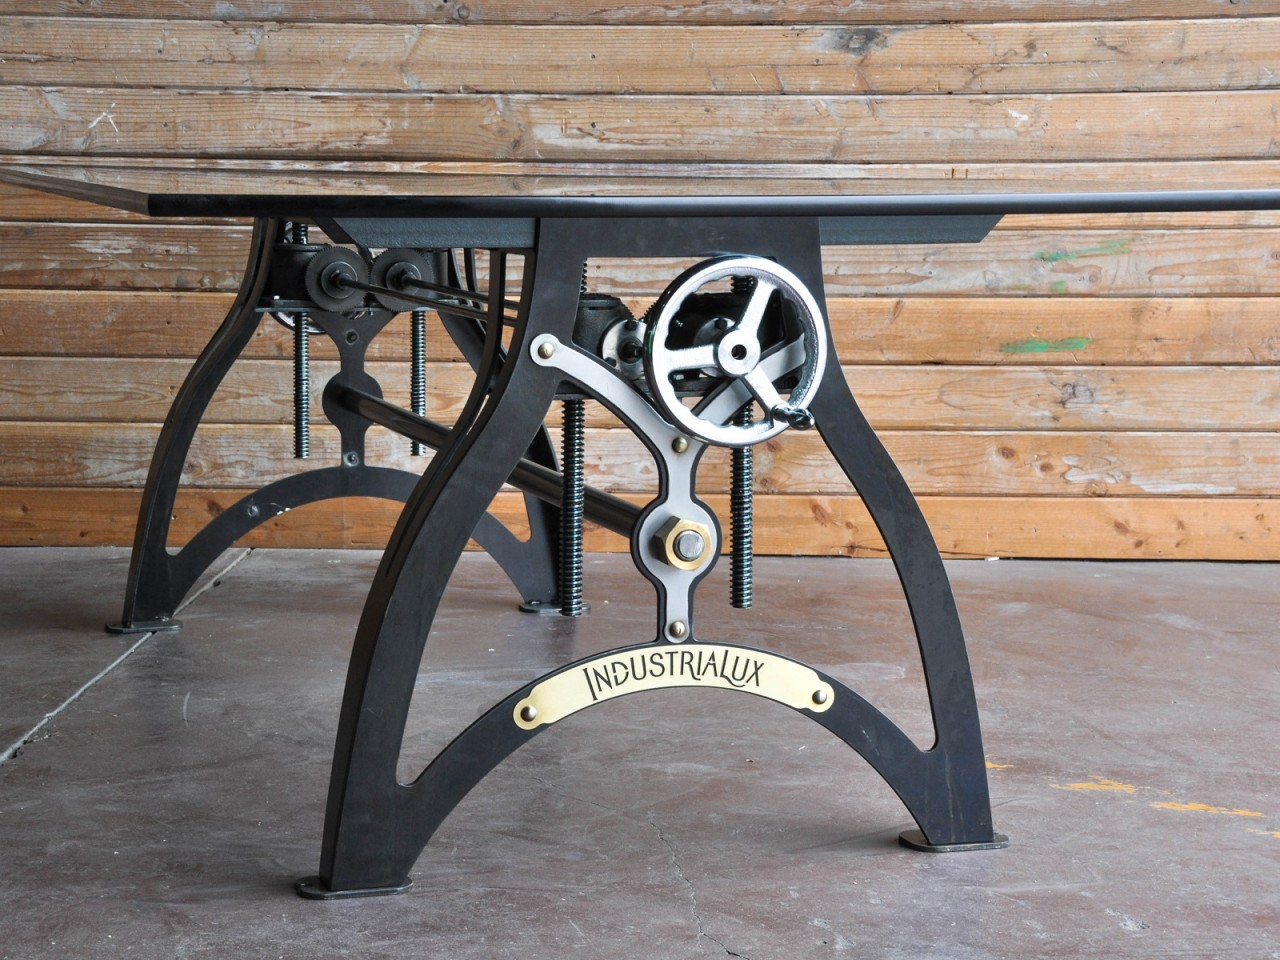 Industria-Lux-Crank-hure-cast-iron-base-vintage-Table